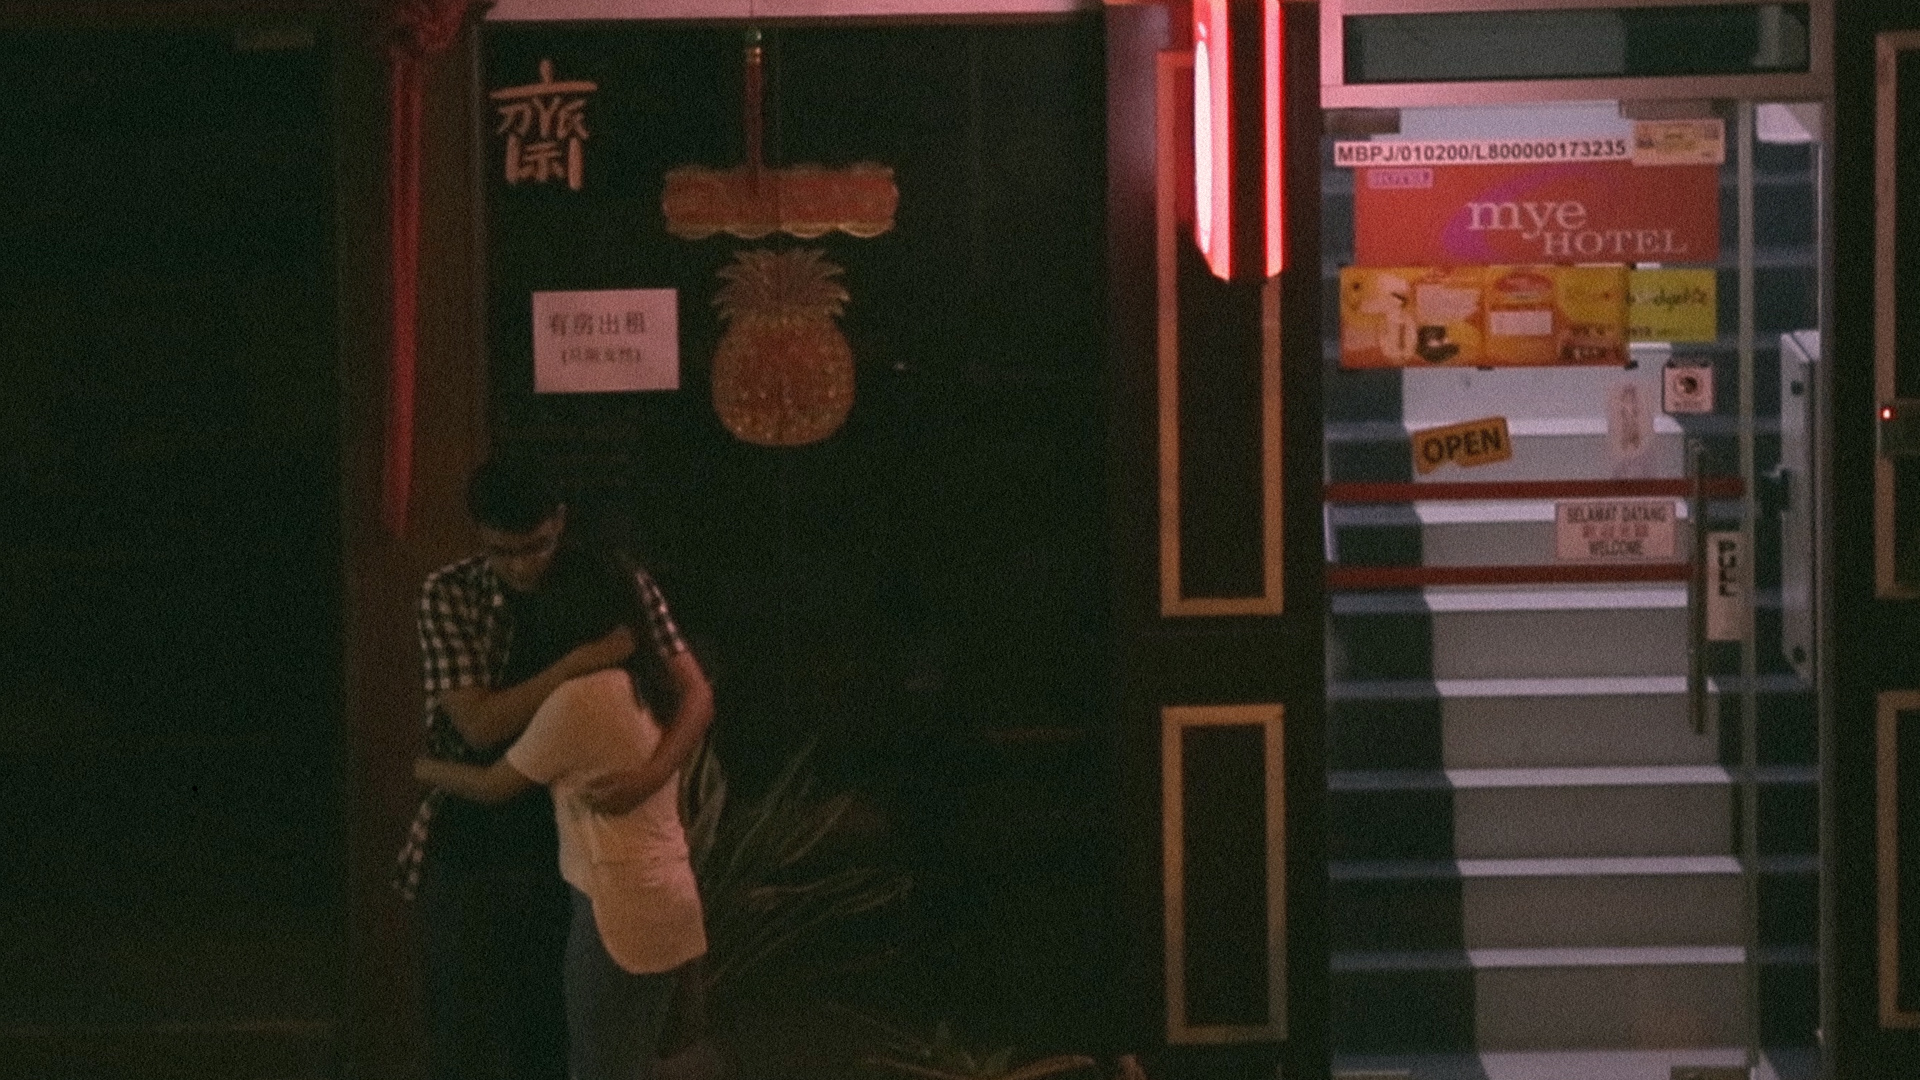 Chloe Yap Mun Ee / Malaysia / 2016 / English &Malay / 29min   A young couple arrives at a budget hotel attempting to get a room. This is the first time they will be intimate with each other. They are two young people confronting their real desire in a strange world.   Director:  Chloe Yap Mun Ee is an aspiring filmmaker and video artist, she explores emerging ways of audio-visual storytelling that engage the senses and provoke thought. She has used different methods and explored different processes in her filmmaking, and constantly searches for ways to experiment with what's possible for the 'cinematic' medium. But she mostly uses the film and video medium to confront her personal struggles and questions, currently exploring themes along the lines of sexuality, gender, intimacy and love.   Producer:  Yana Al-Yahya